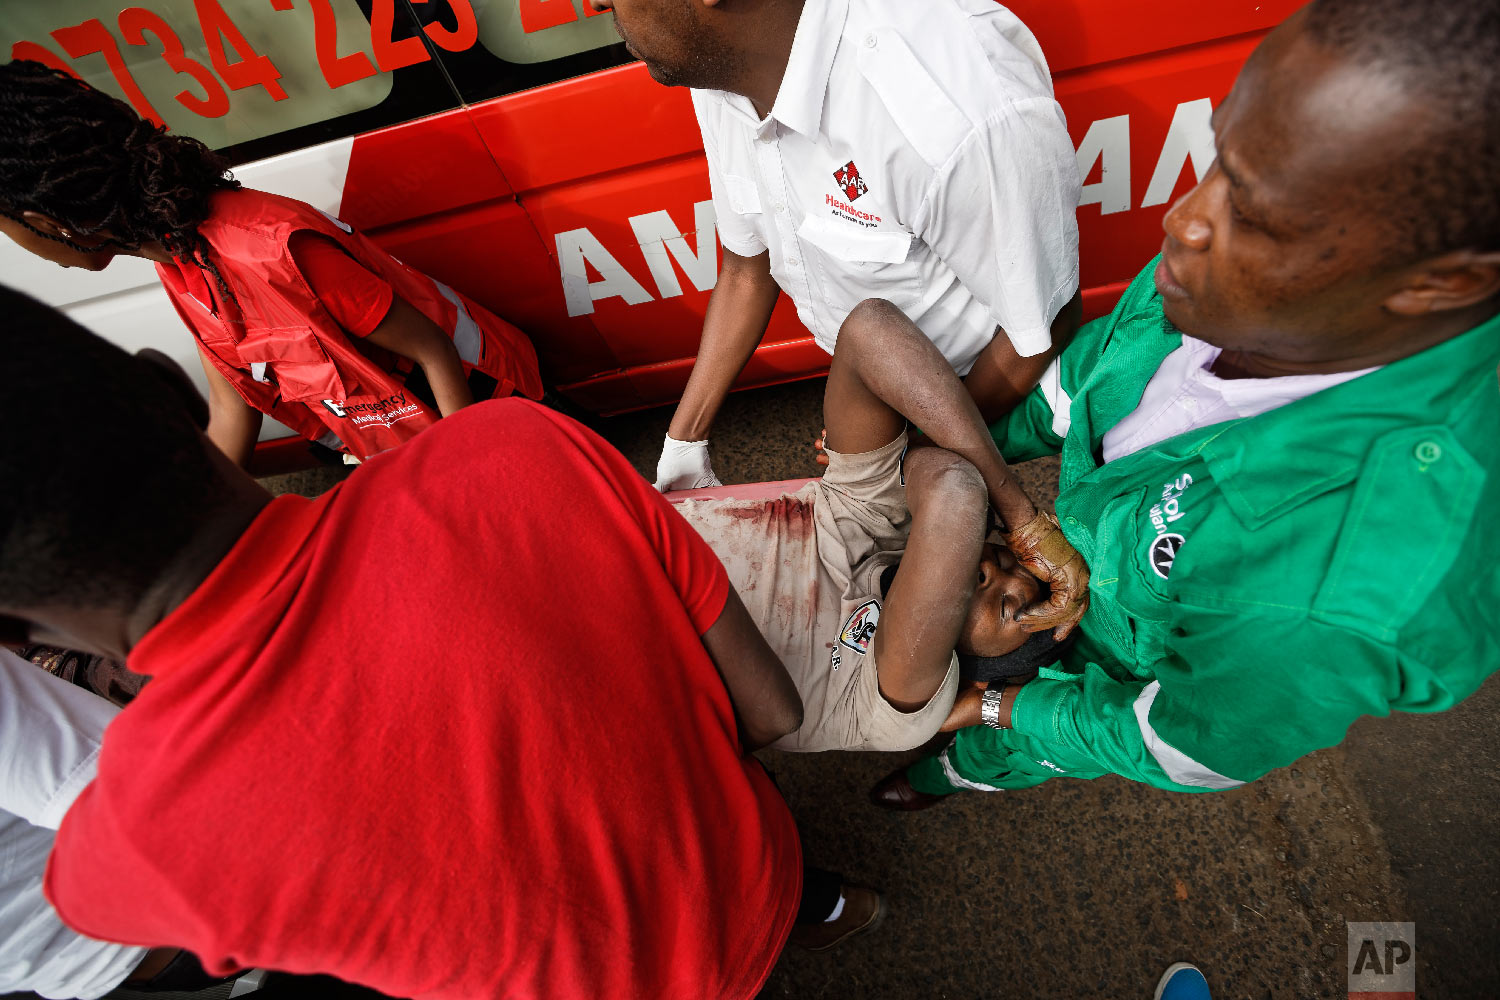 A wounded member of Kenyan special forces is carried from a US embassy diplomatic vehicle into an ambulance by paramedics at the scene Jan. 16, 2019 in Nairobi, Kenya. (AP Photo/Ben Curtis)